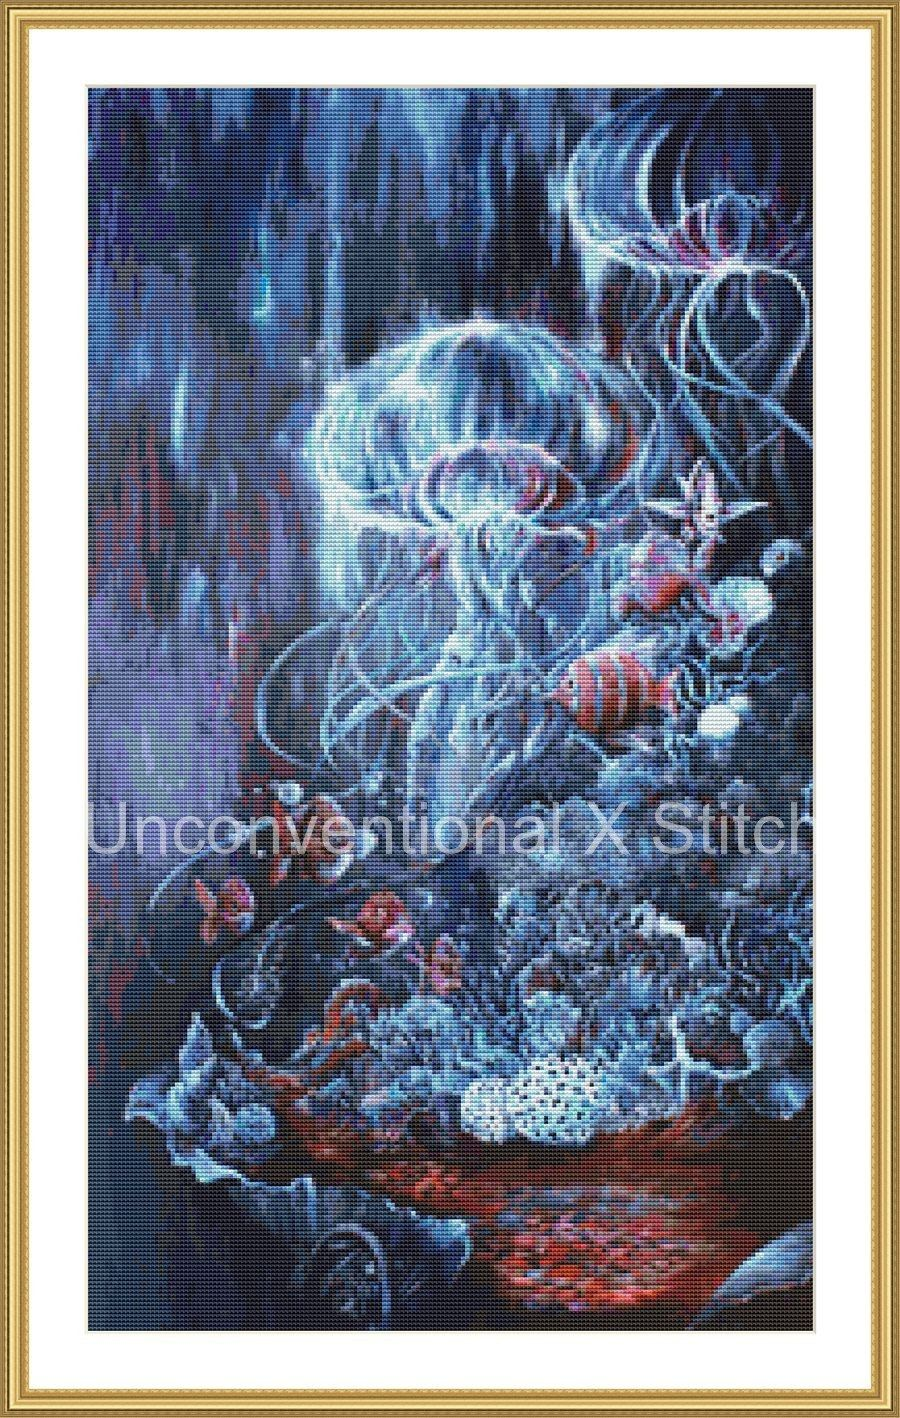 Fish and jellyfish cross stitch pattern - modern counted cross stitch - August and Abyssal Extract - Licensed Angela AK Westerman by UnconventionalX on Etsy